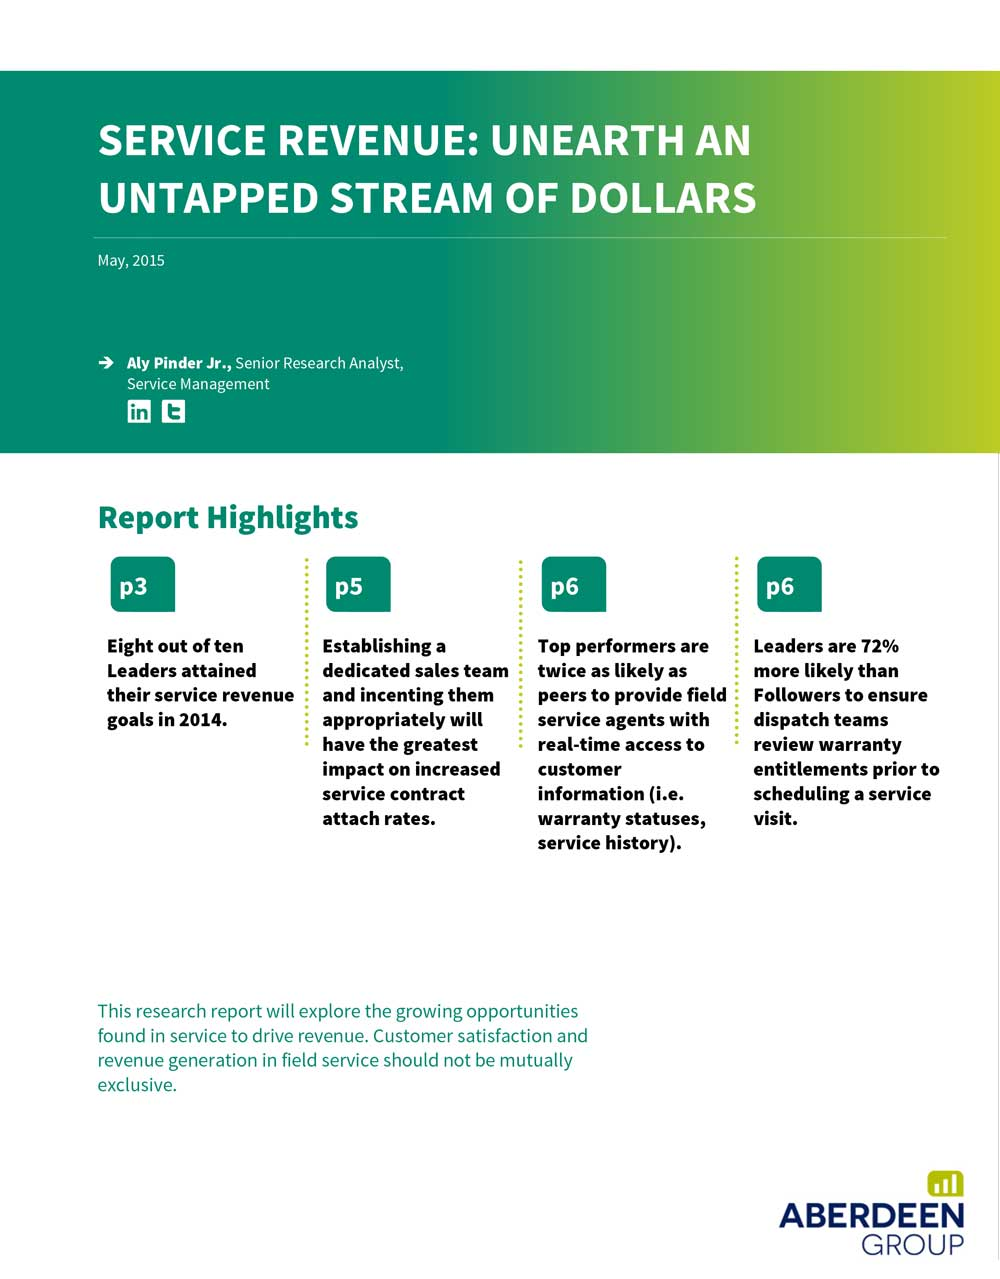 Service Revenue: Unearth an Untapped Stream of Dollars